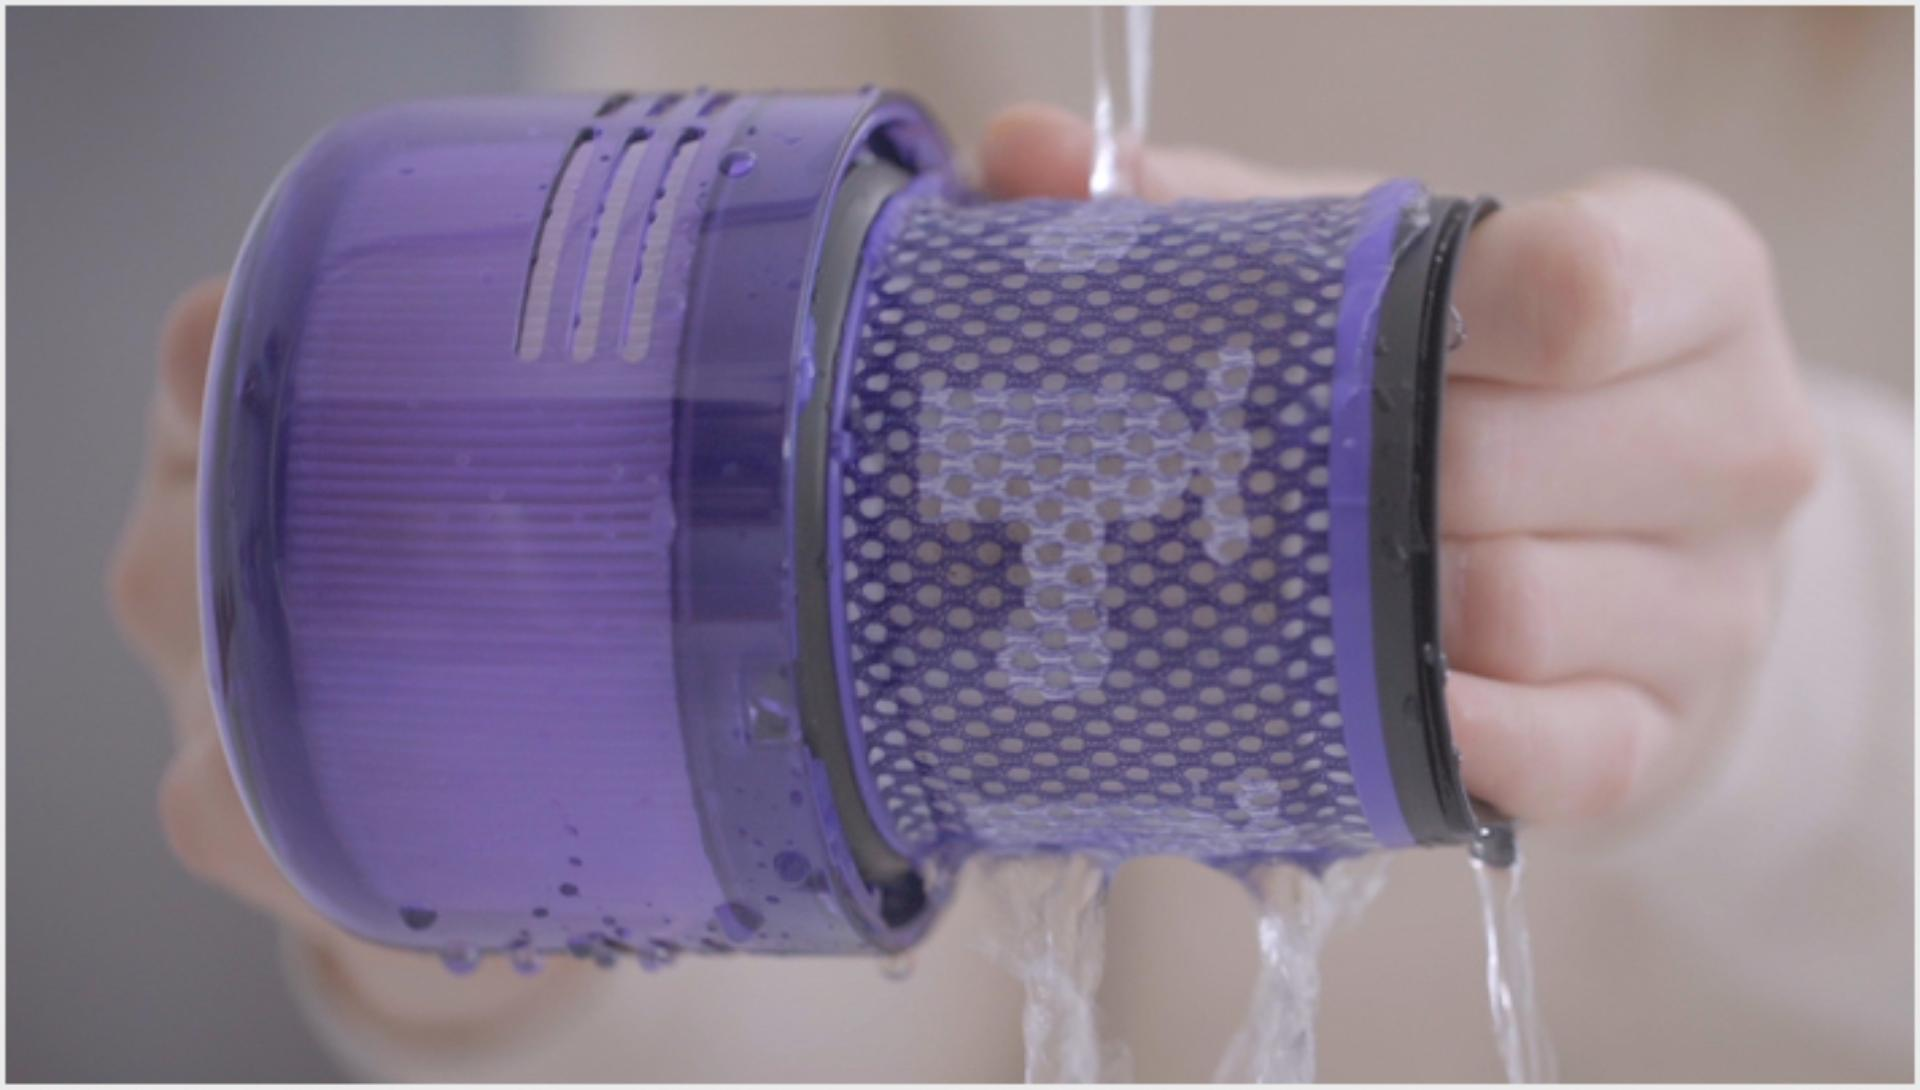 Image from video about washing the filter